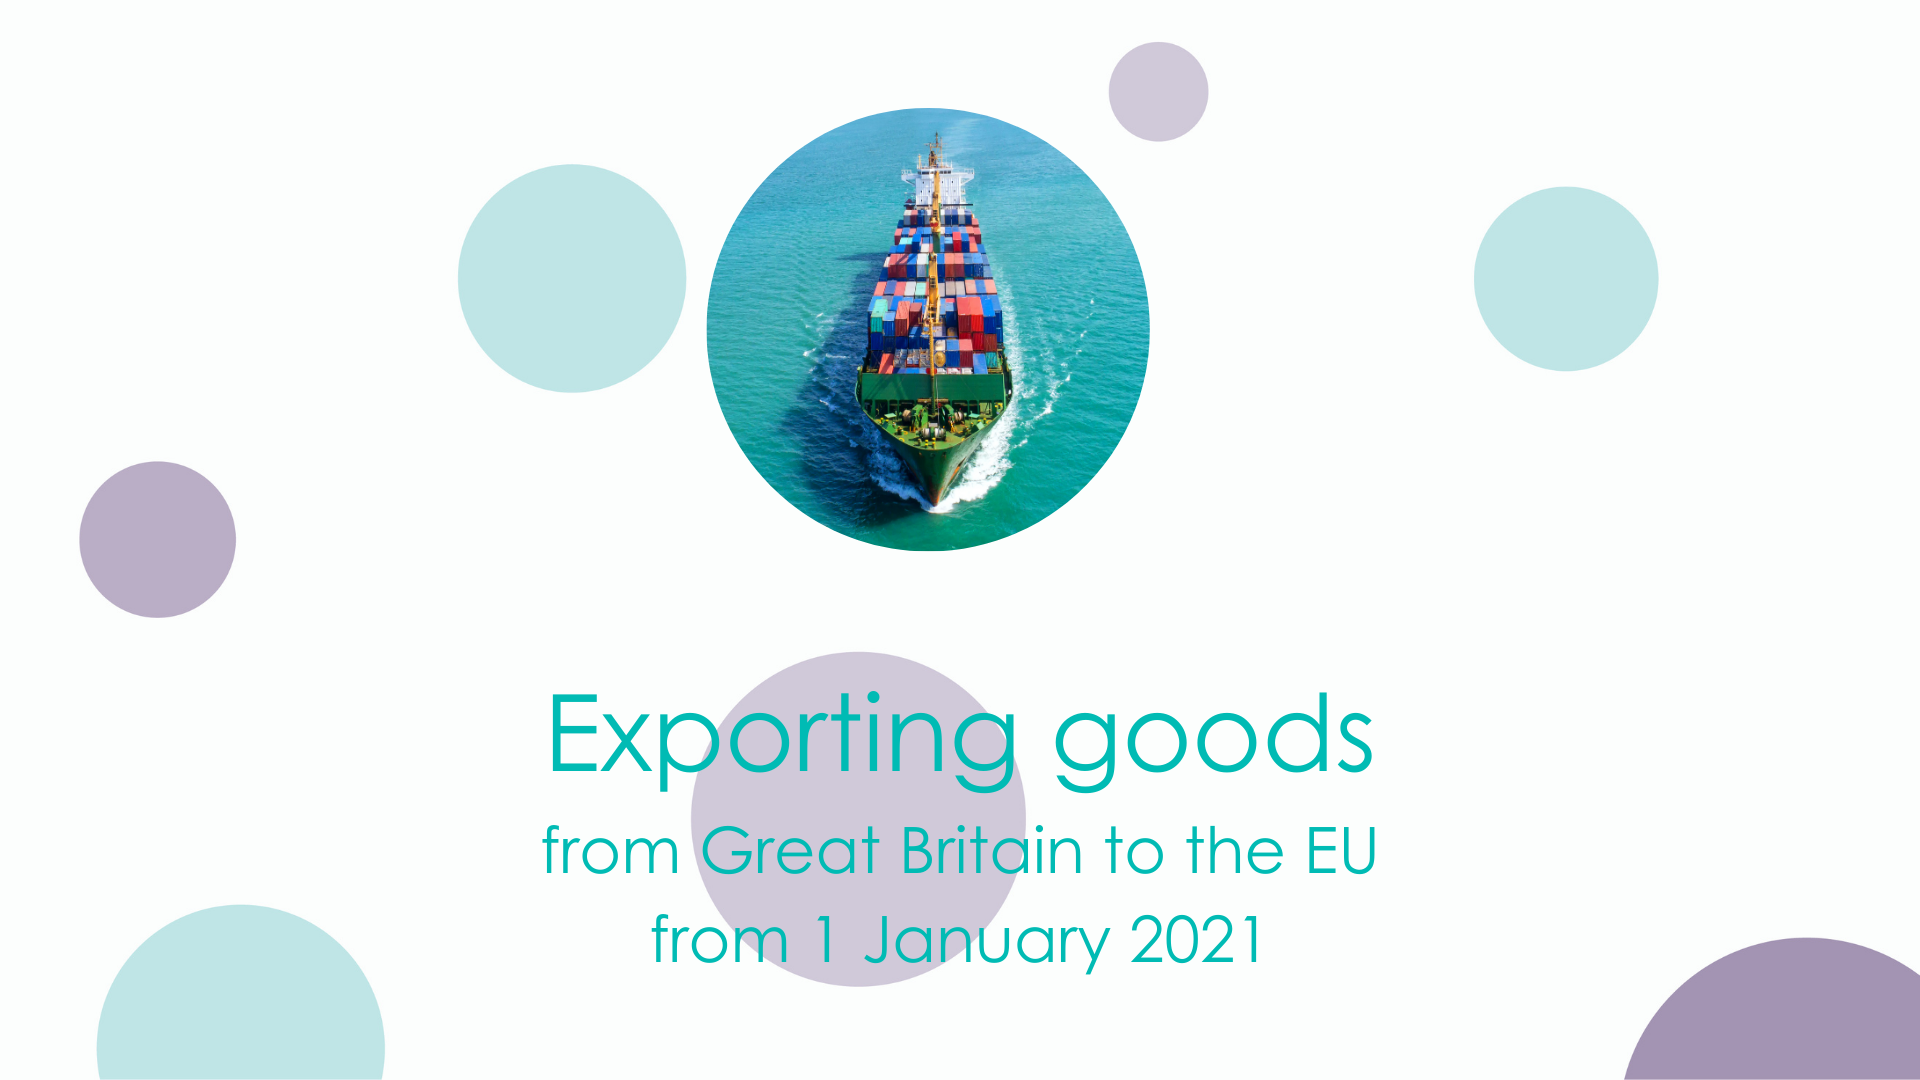 Exporting goods from Great Britain to the EU from 1 January 2021